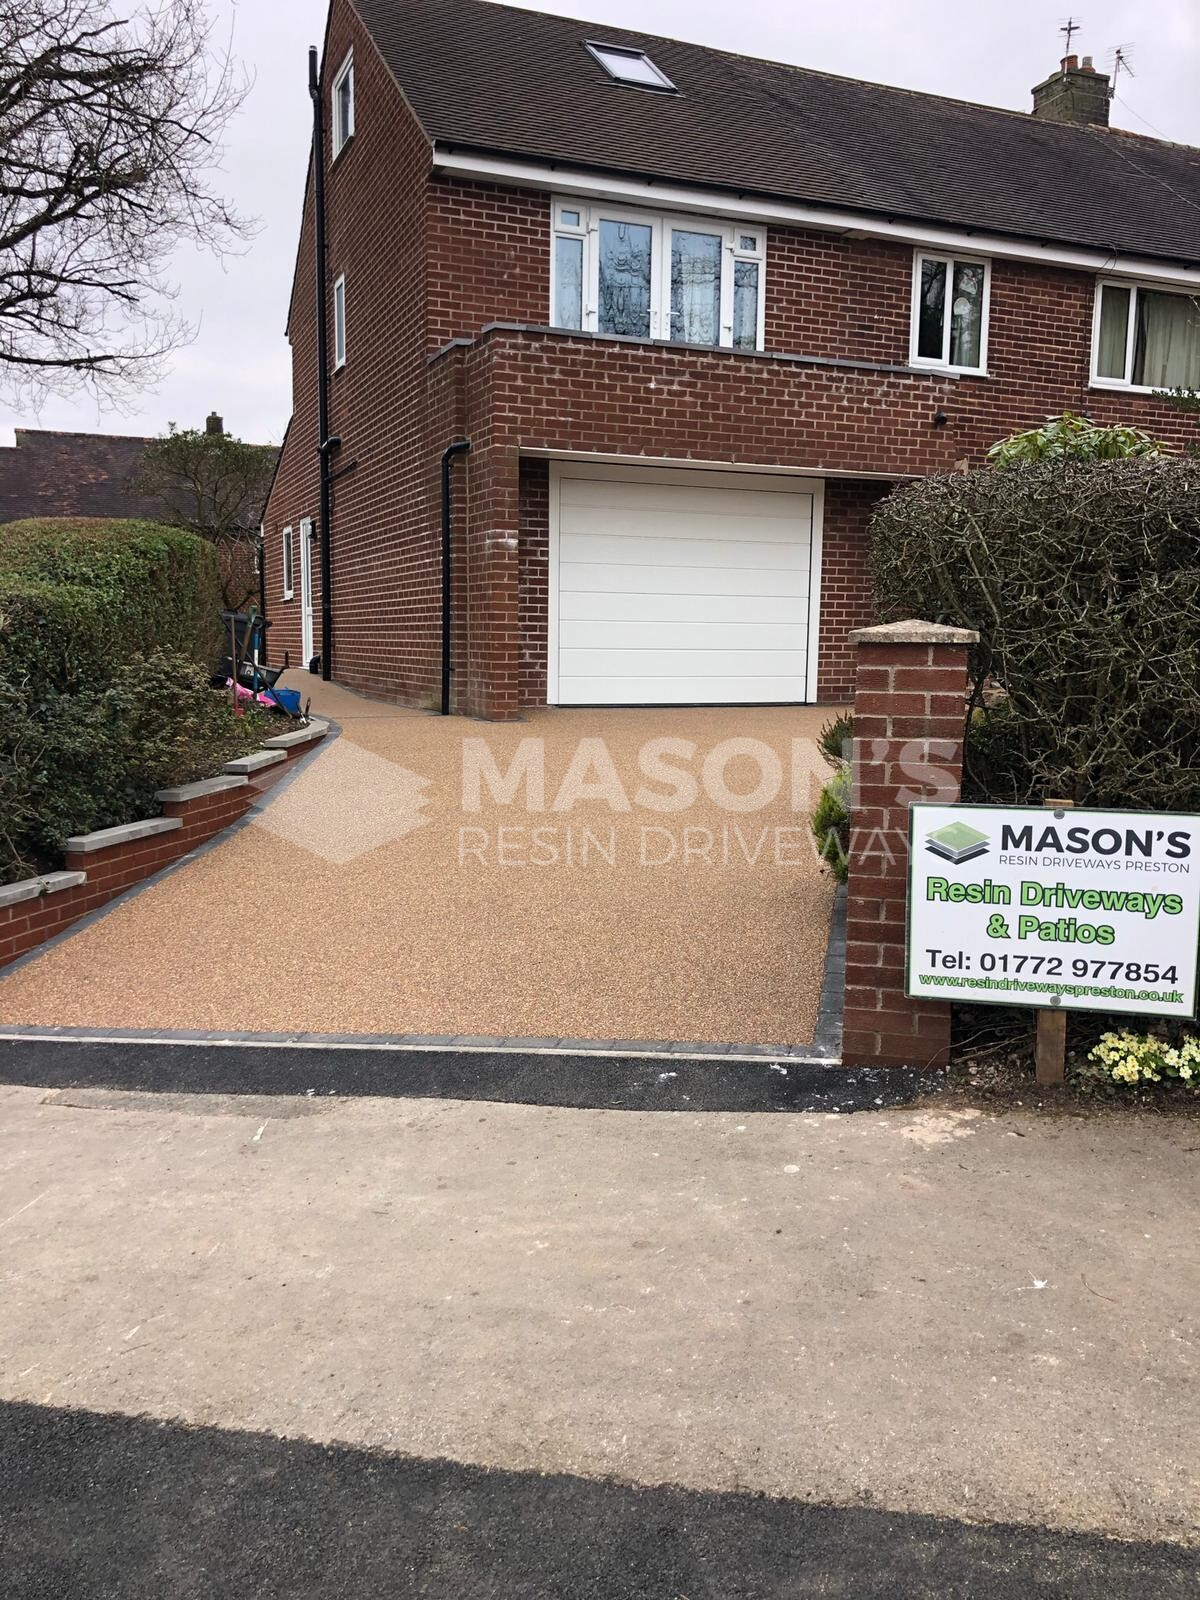 ASP sign with rose resin driveway